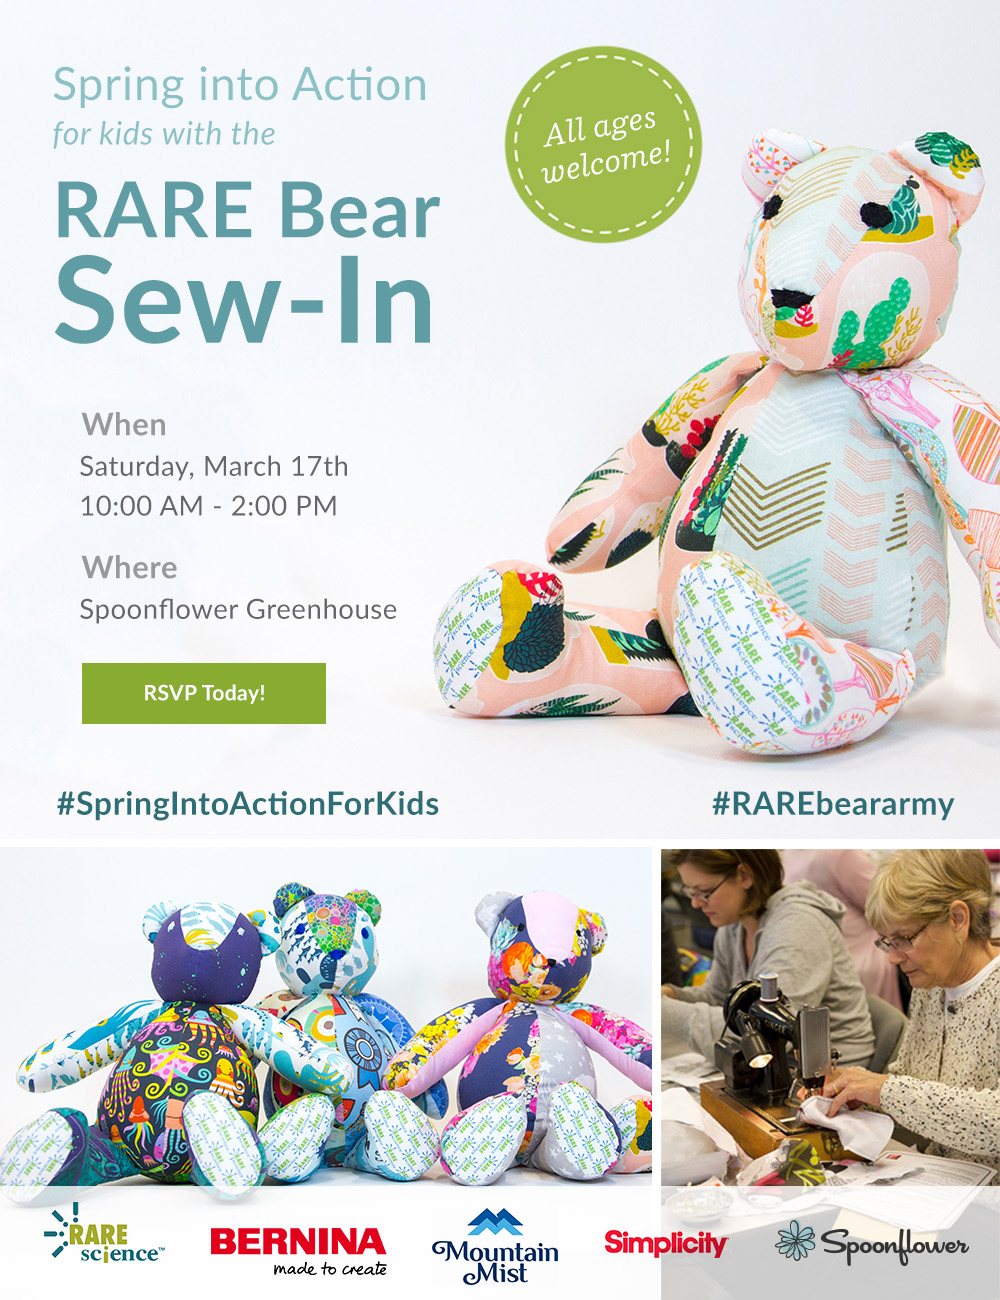 Save the Date! The 3rd Annual RARE Bear Sew-In | Spoonflower Blog